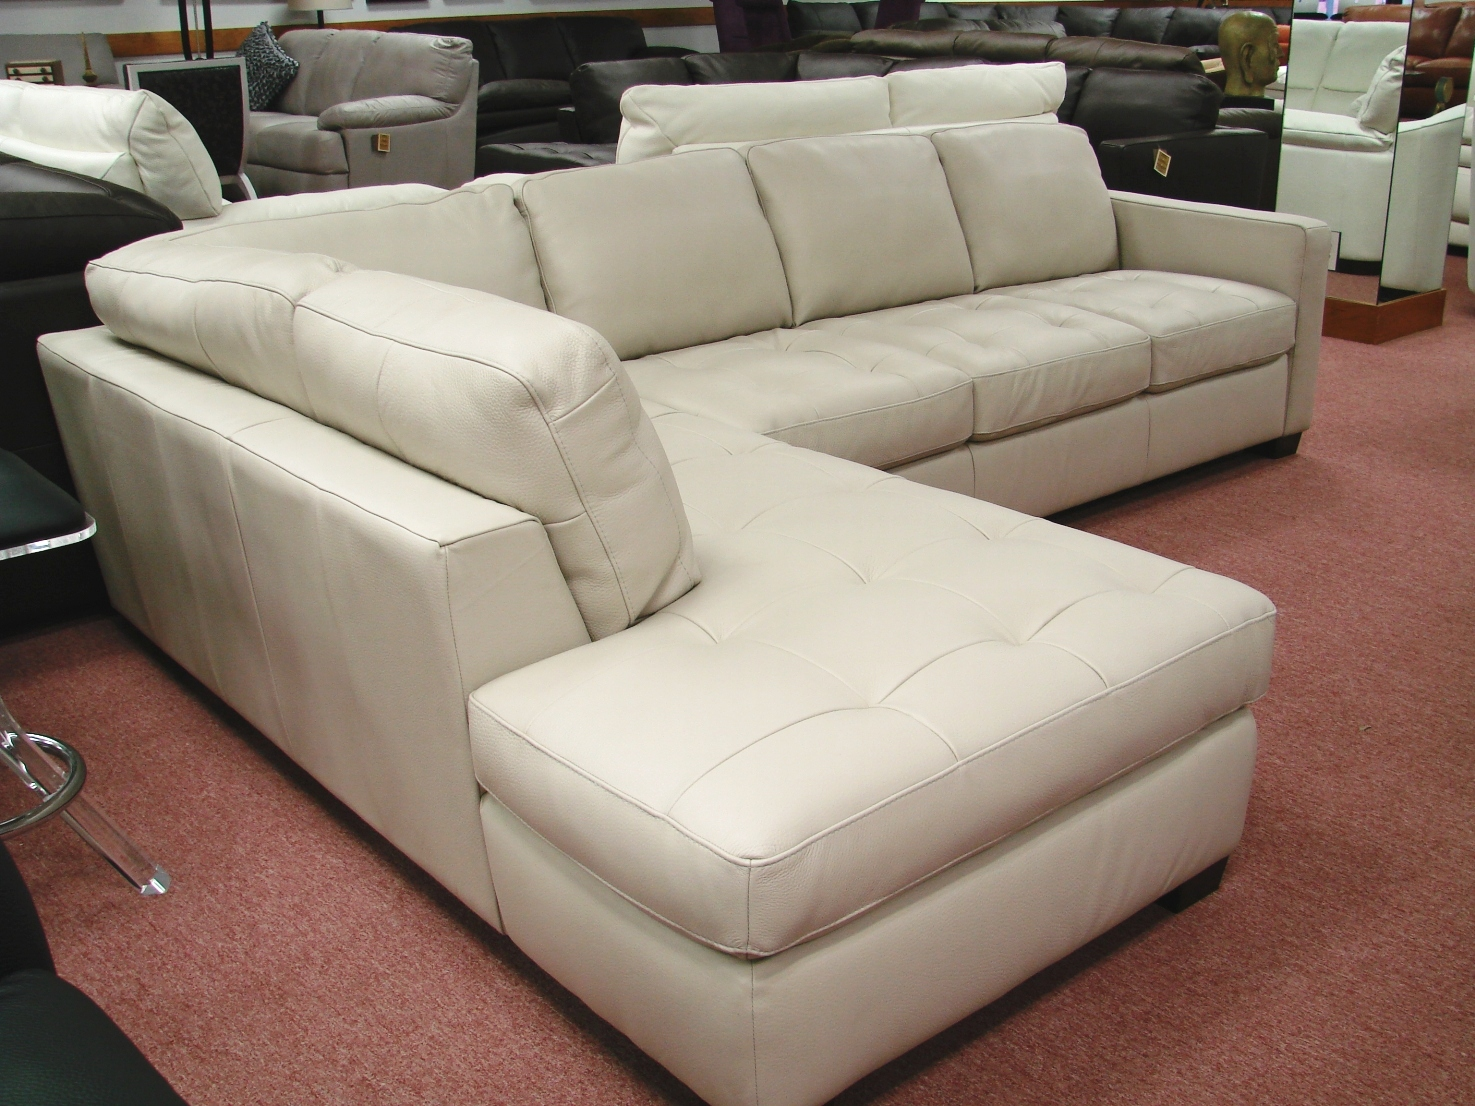 Natuzzi Leather Sectional On Sale Natuzzi Sofa On Sale